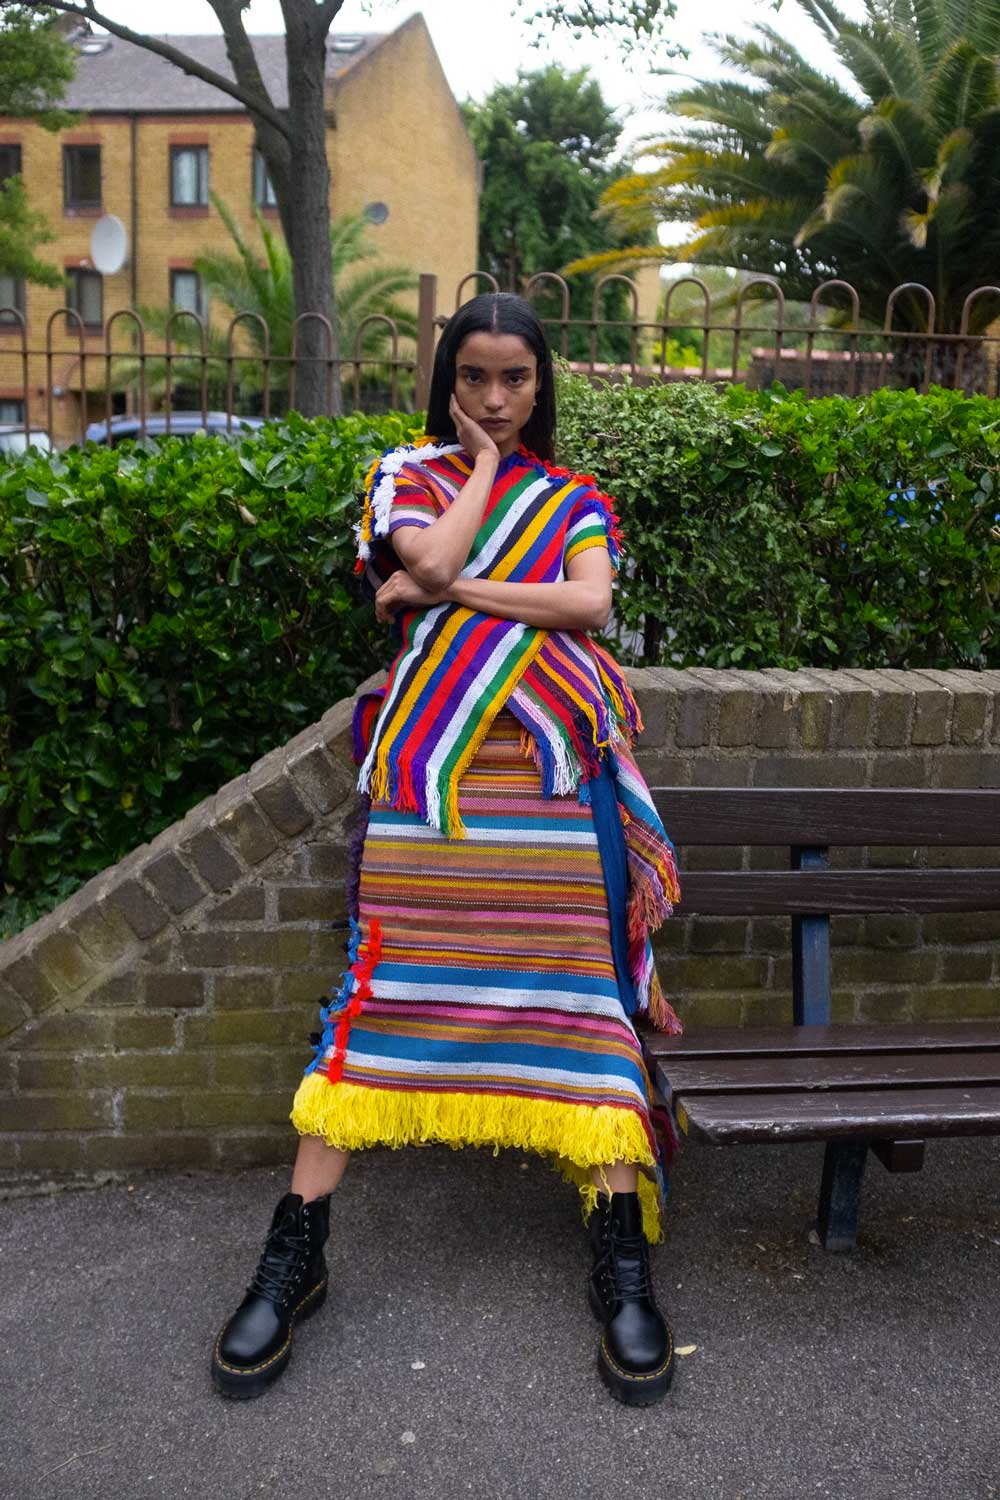 Cross Fringed Top & skirt by I AM ISIGO at NOBORDERS